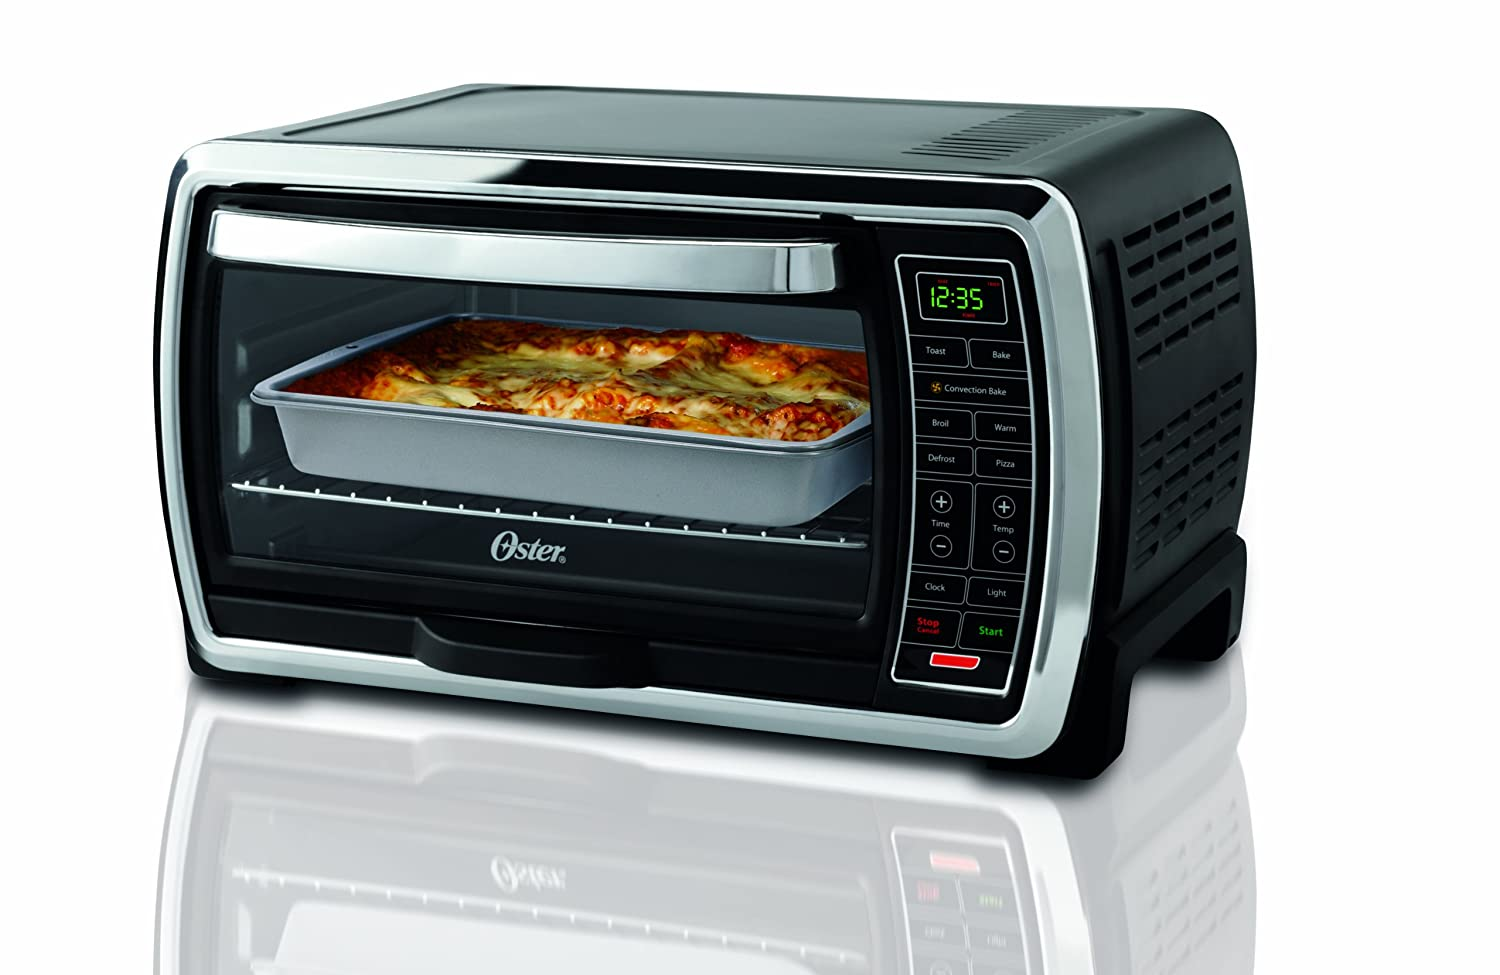 oster lg capacity countertop 6 slice digital convection toaster oven black new ebay. Black Bedroom Furniture Sets. Home Design Ideas